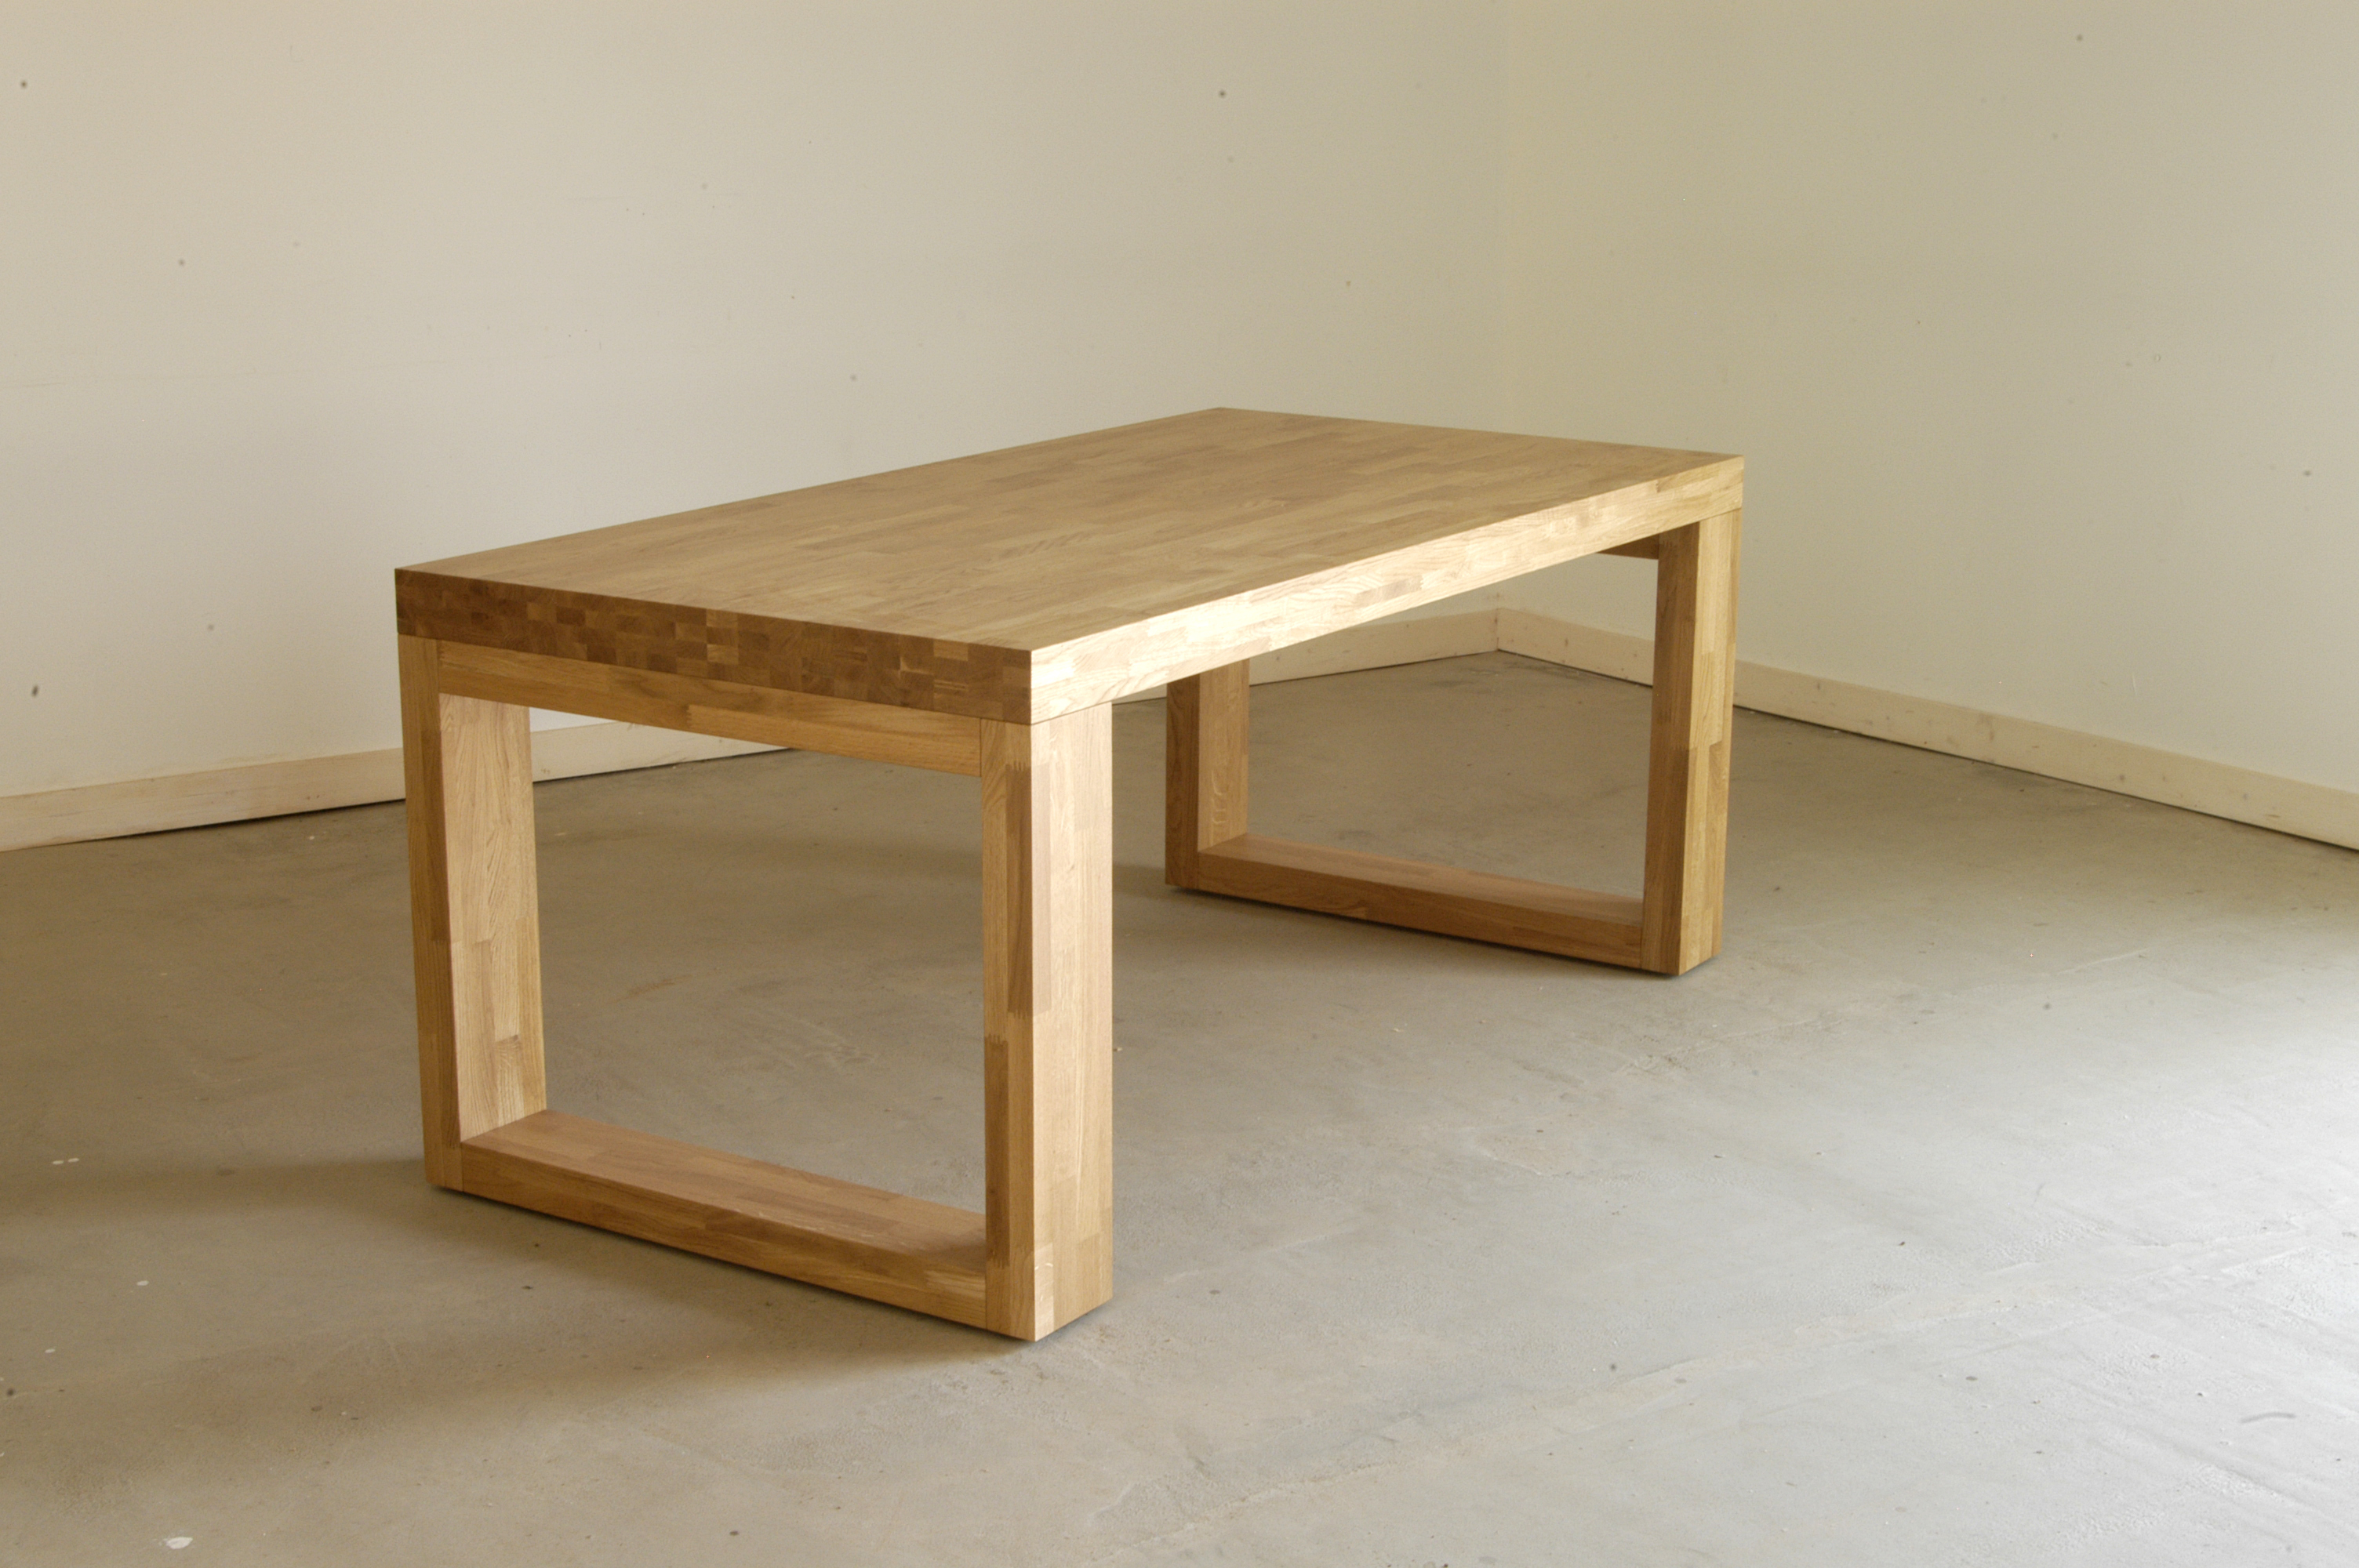 Table bois moderne - Table en bois moderne ...